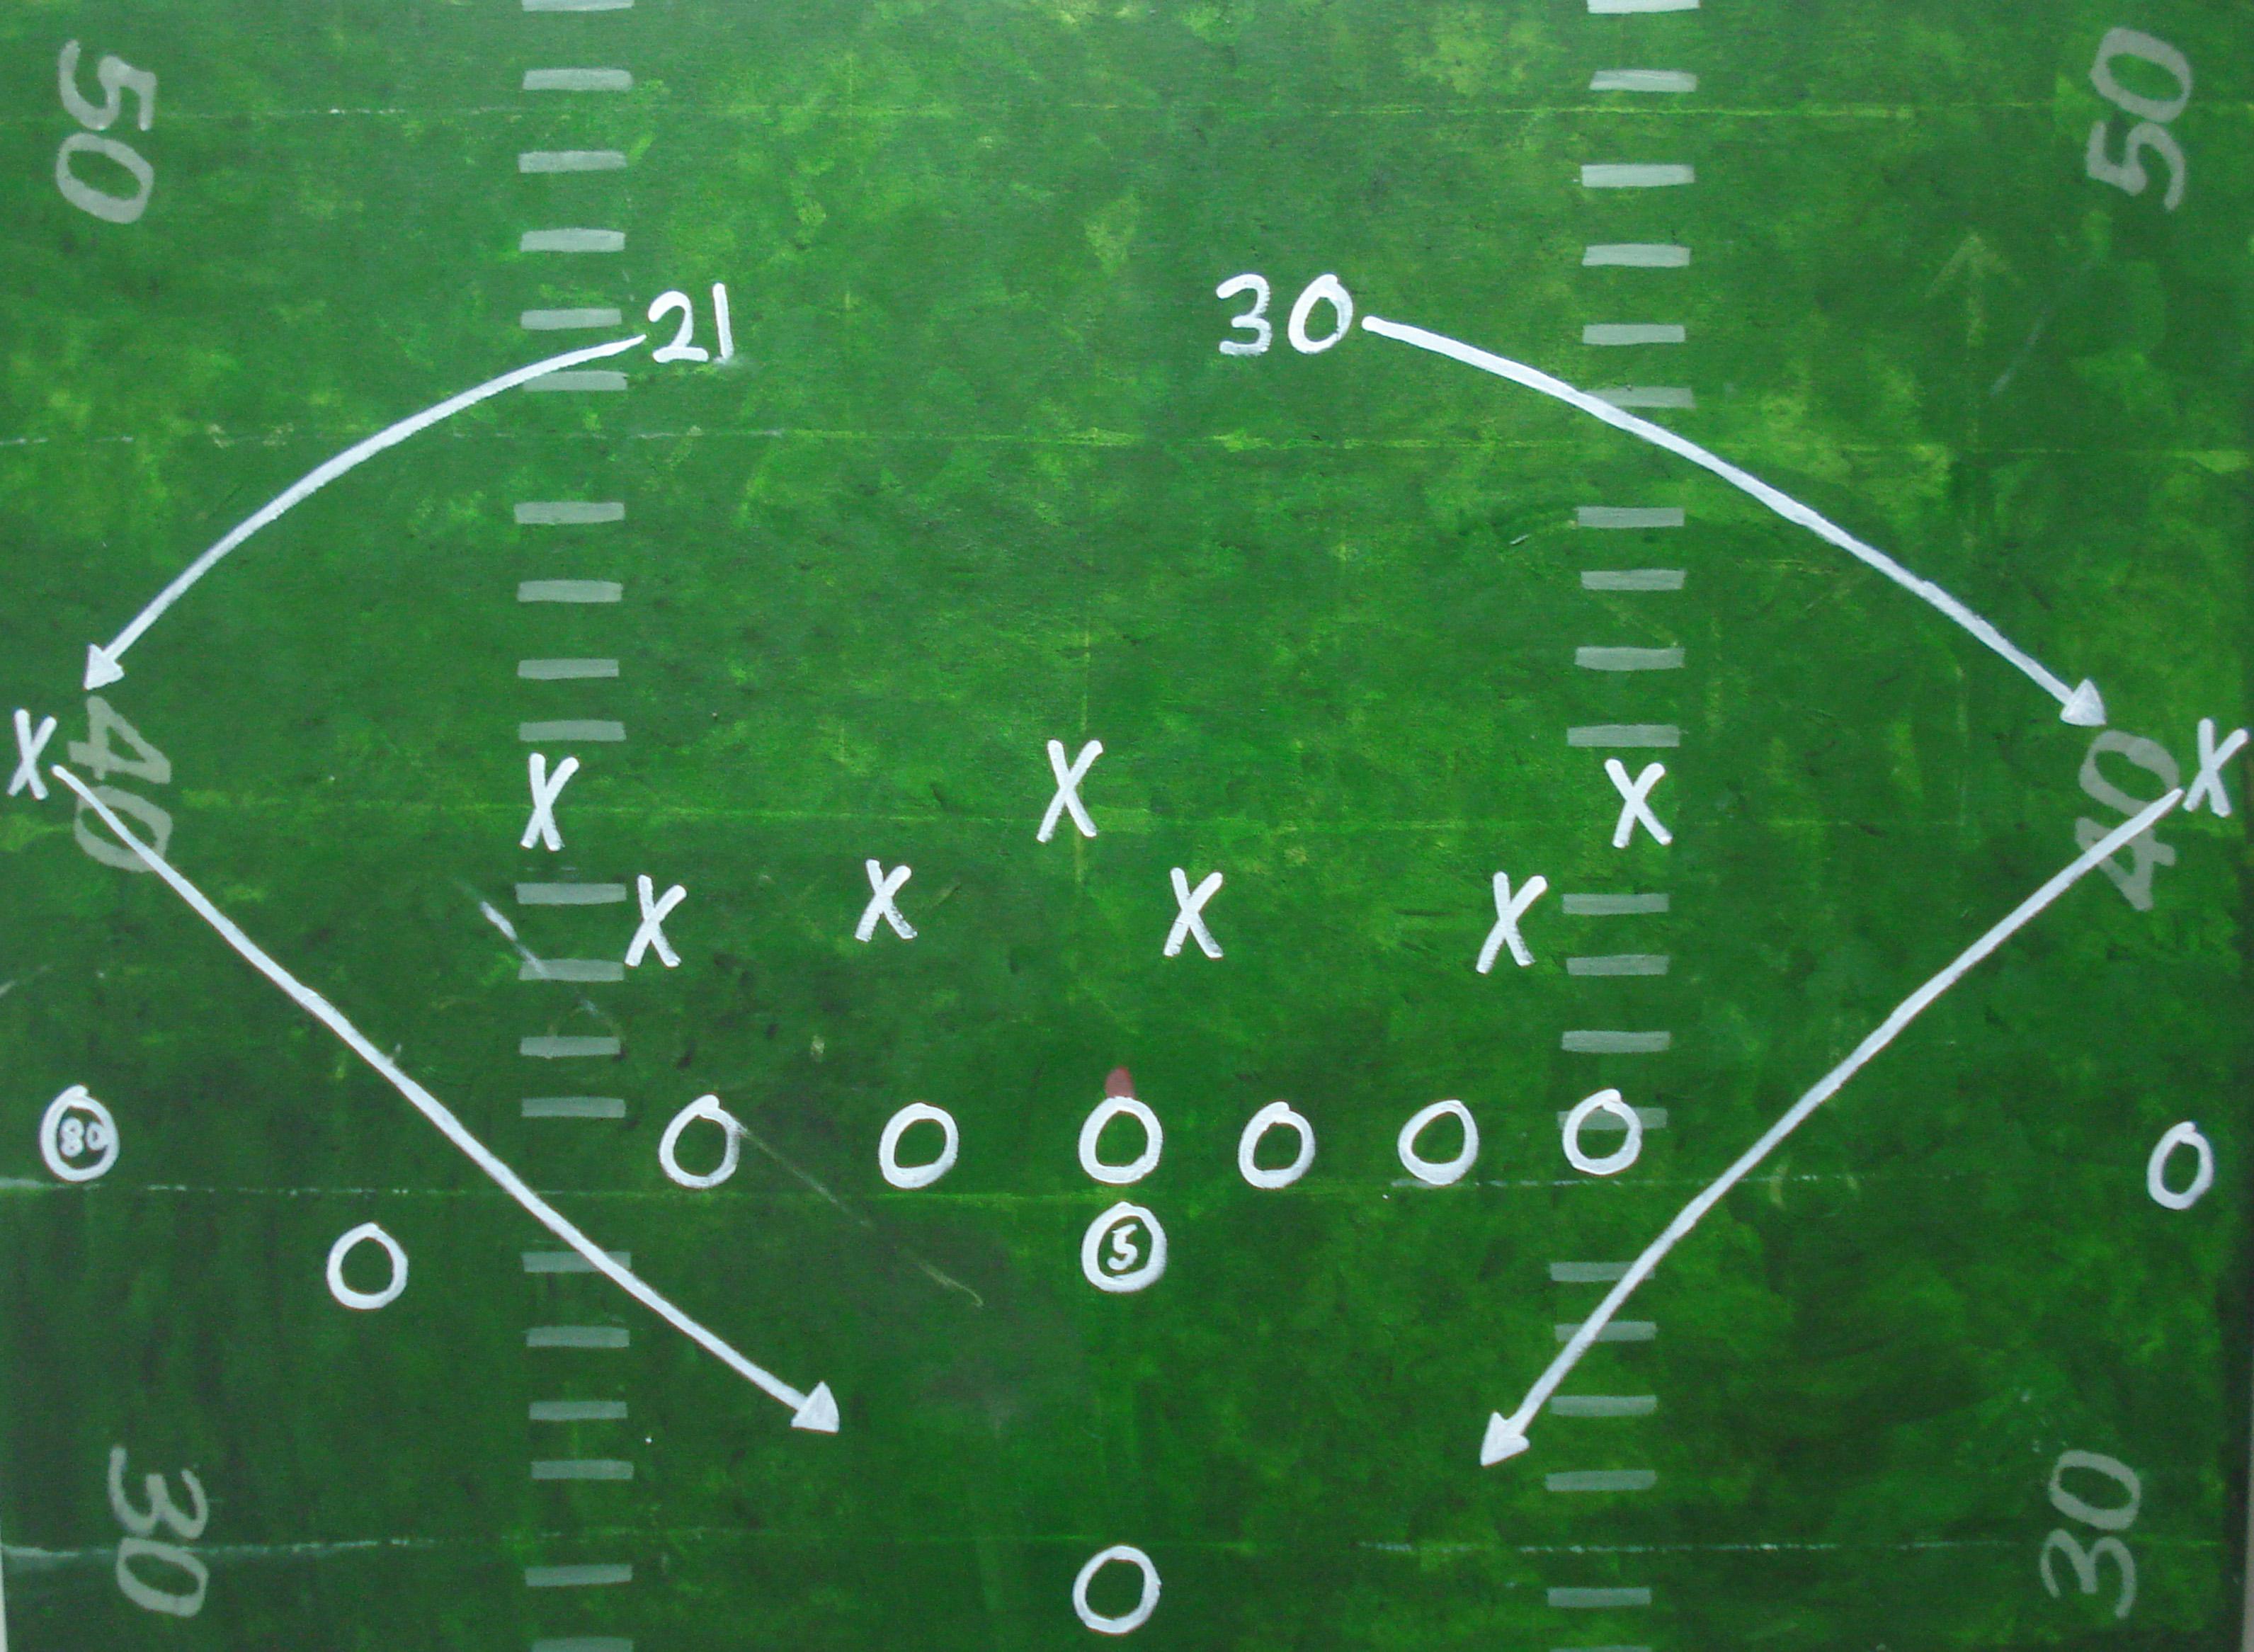 Chalkboard with football strategy